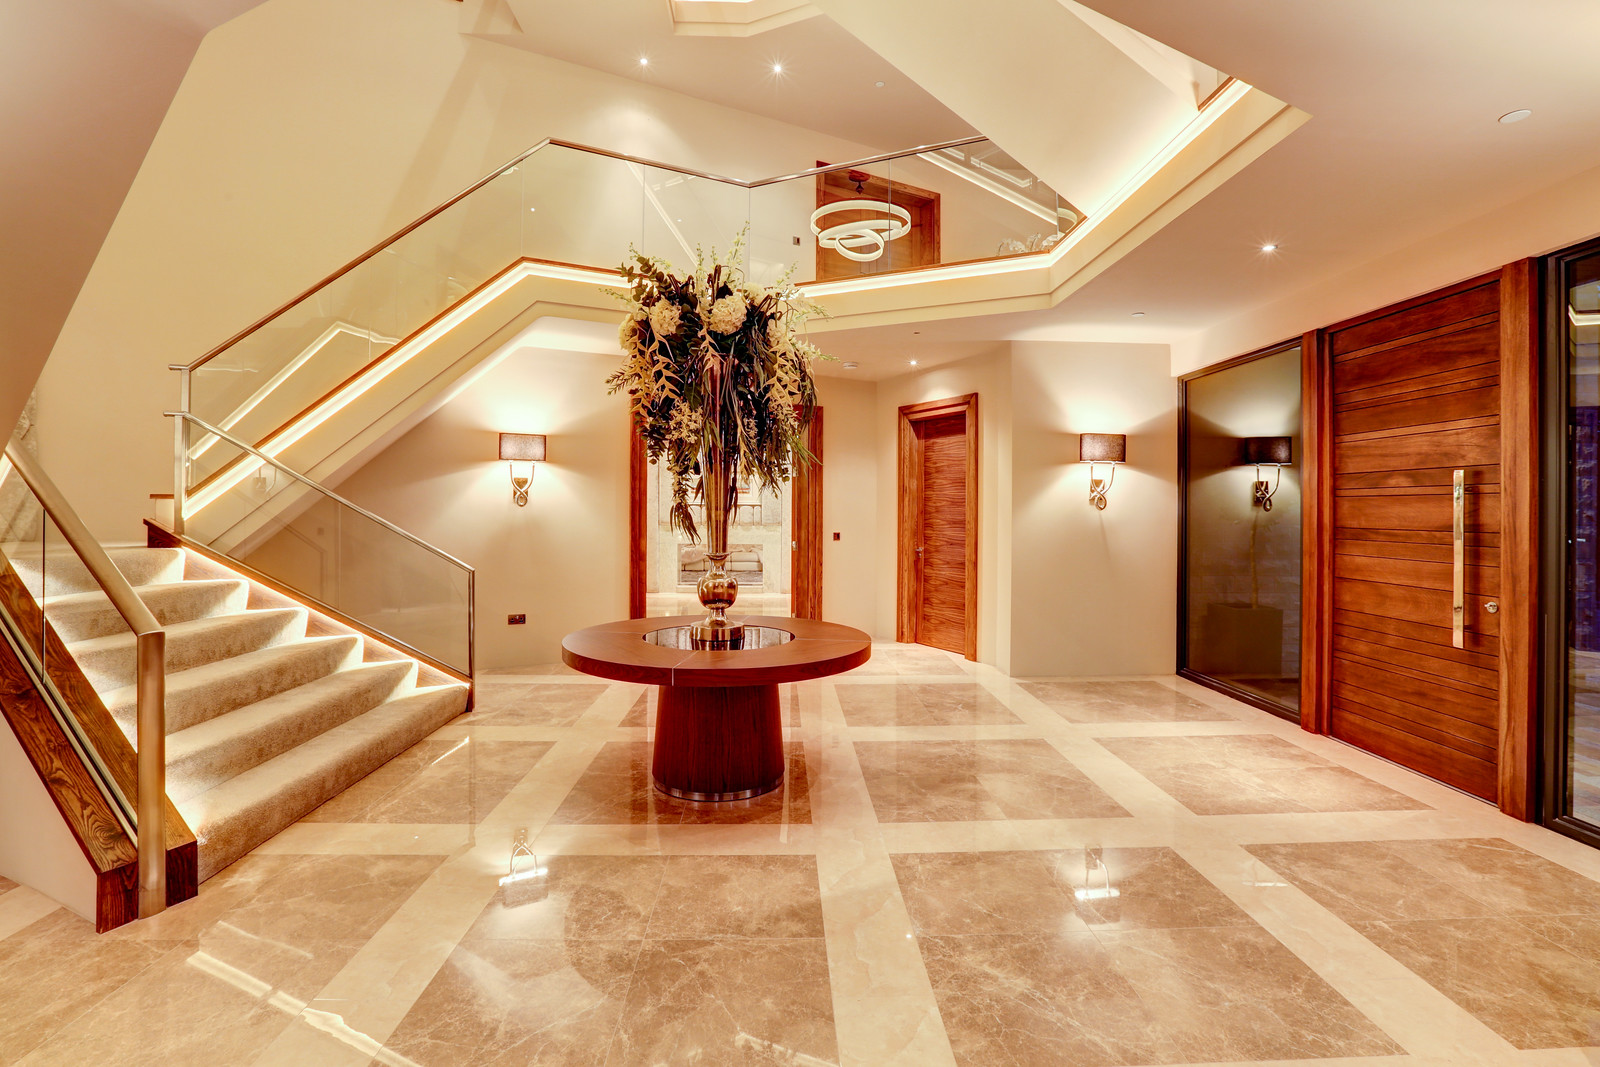 Tanglewood, breathtaking entrance leading to imperial staircase